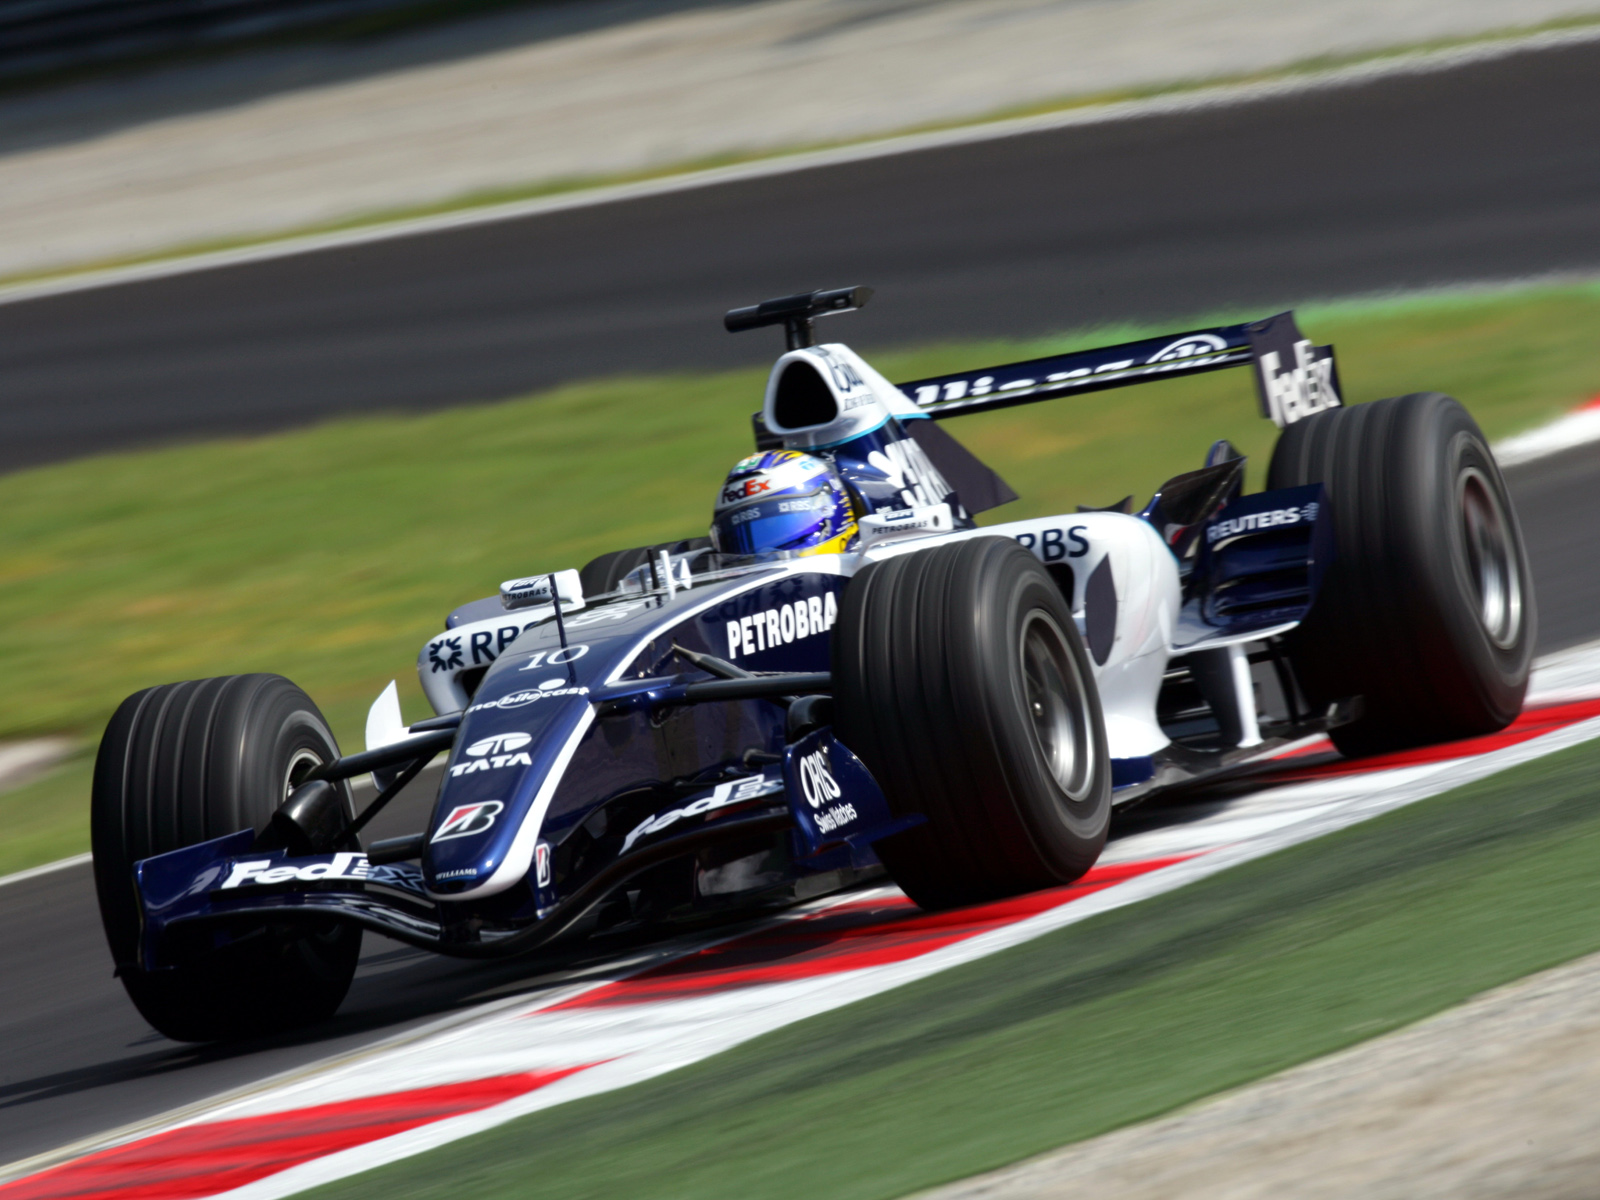 Williams fw28 photo - 9